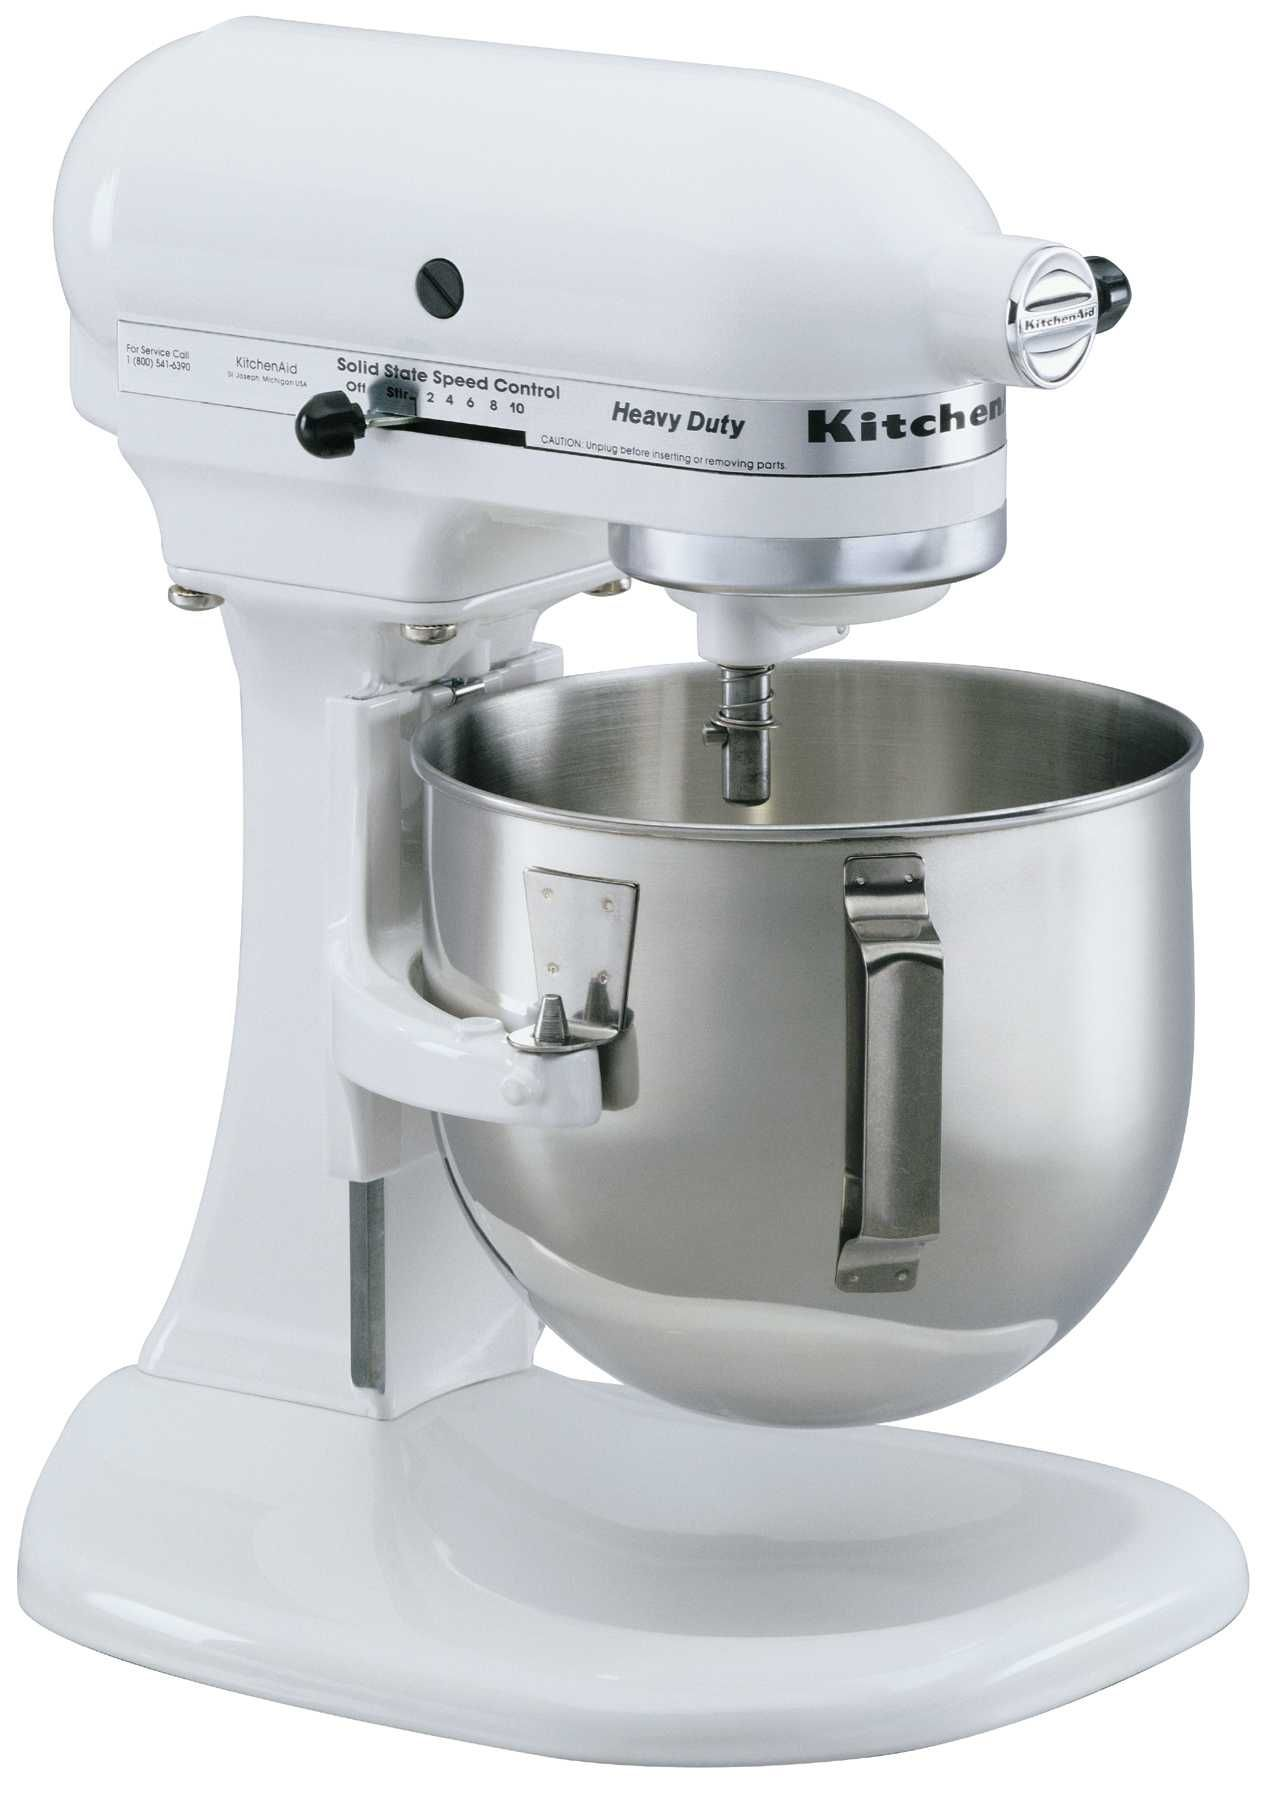 kitchenaid k5sswh heavy duty series 5 quart stand mixer white my rh pinterest com